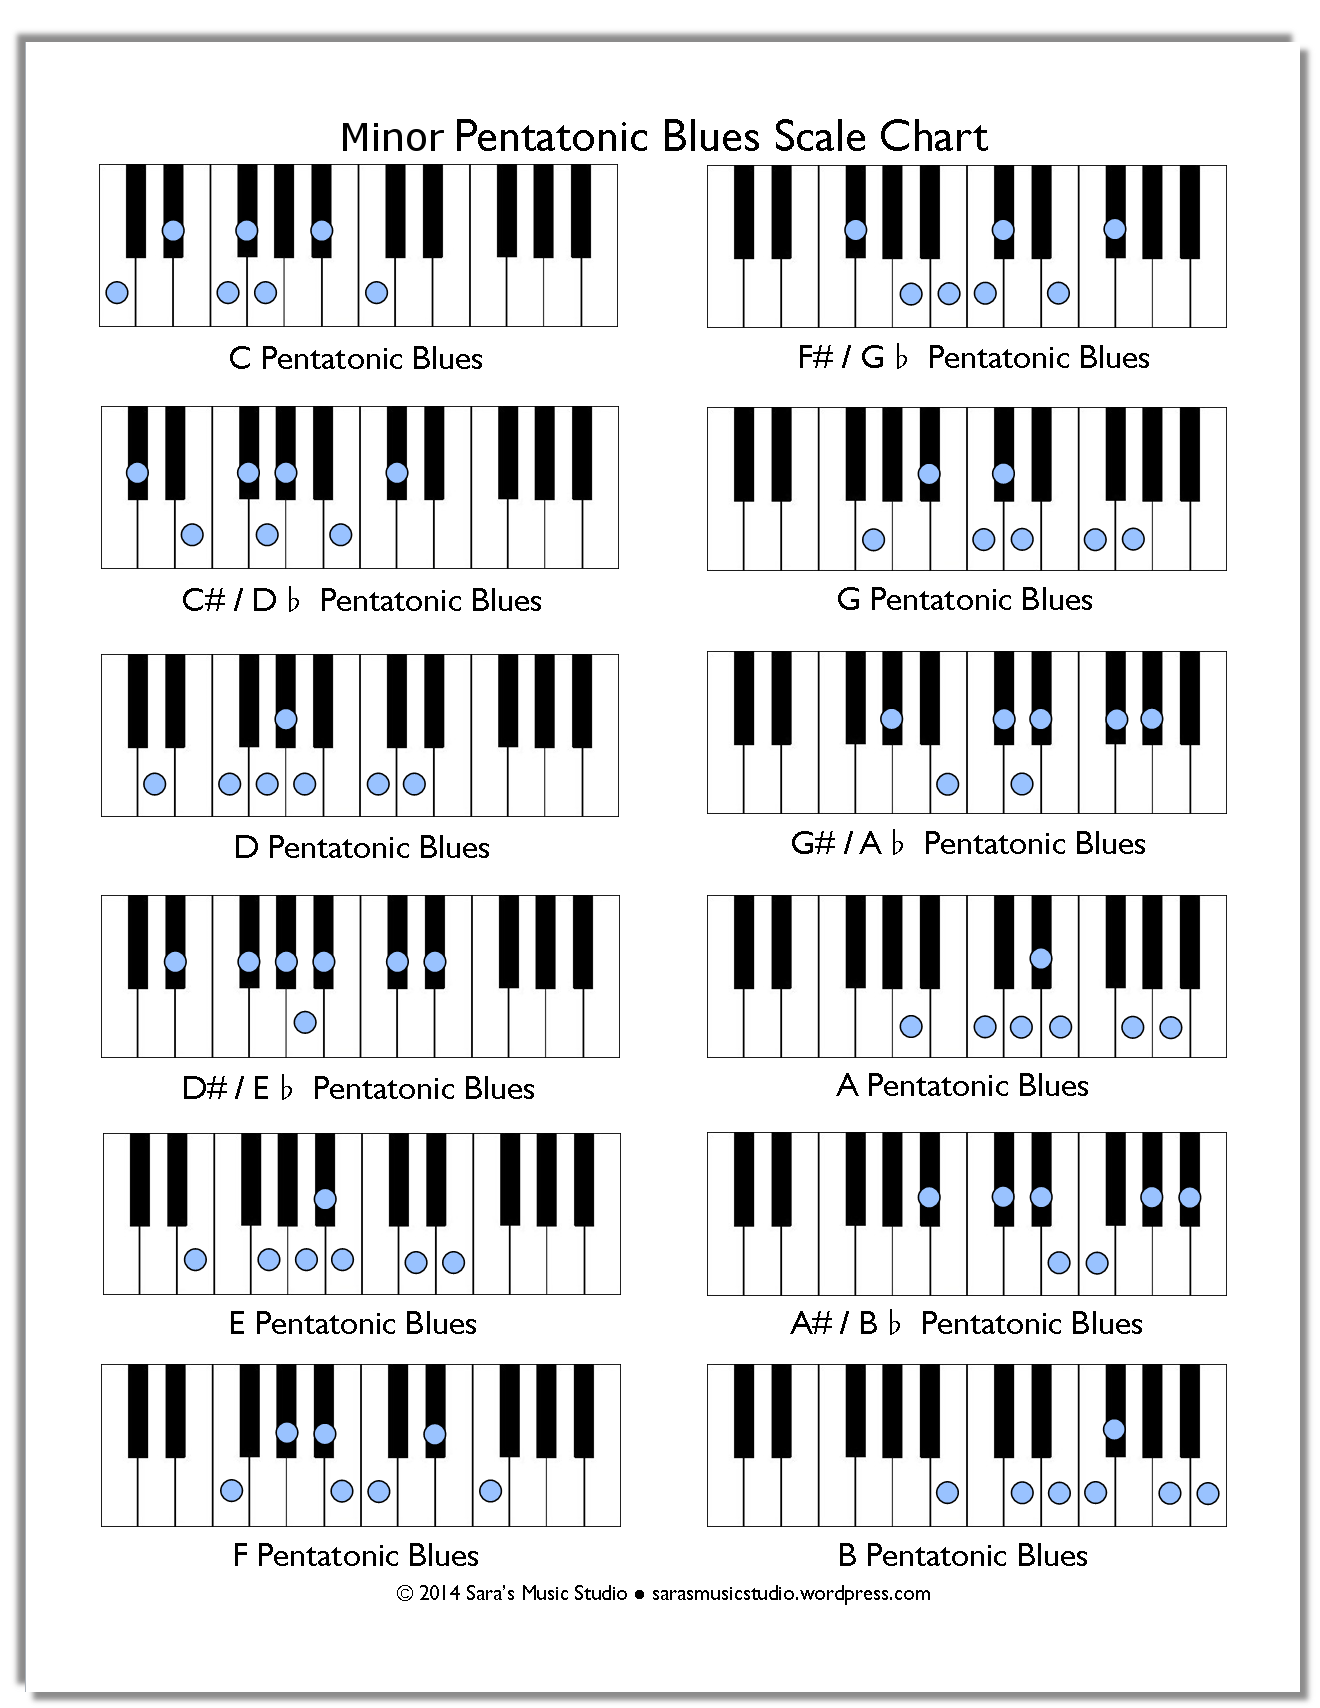 Free Minor Pentatonic Blues Scale Chart